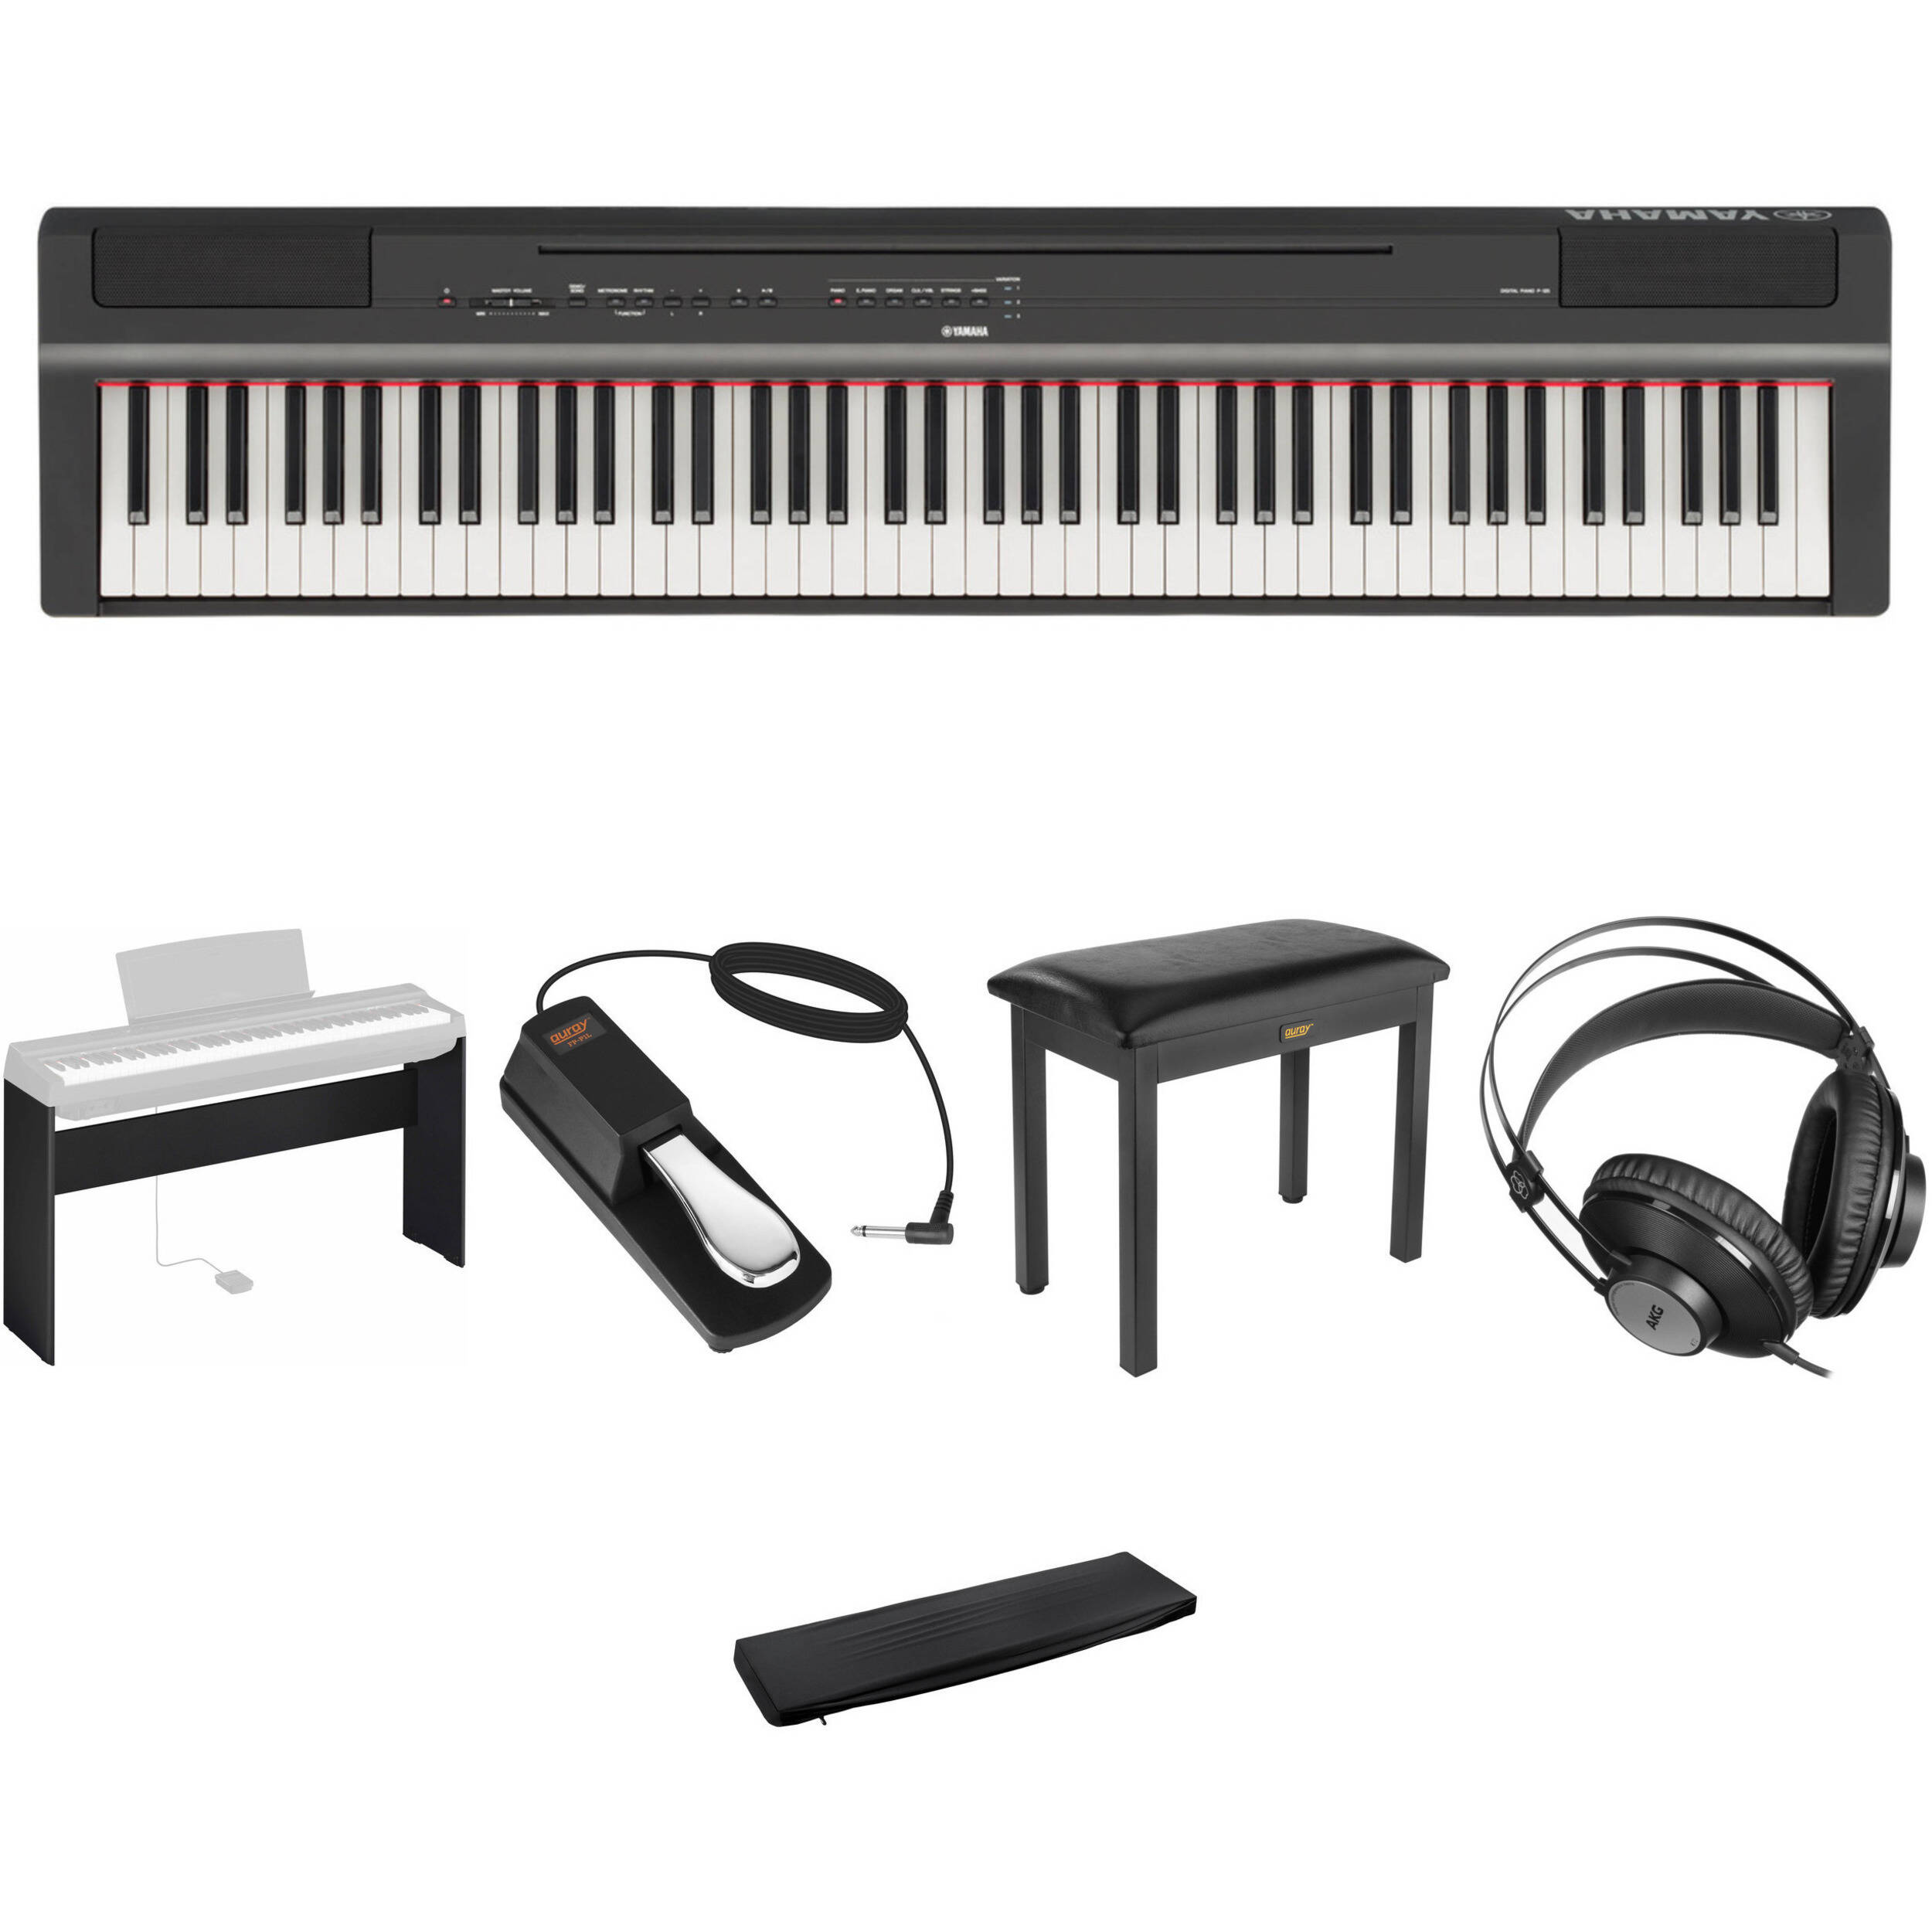 Superb Yamaha P 125 Digital Piano Bundle With Stand And Bench Black Gmtry Best Dining Table And Chair Ideas Images Gmtryco